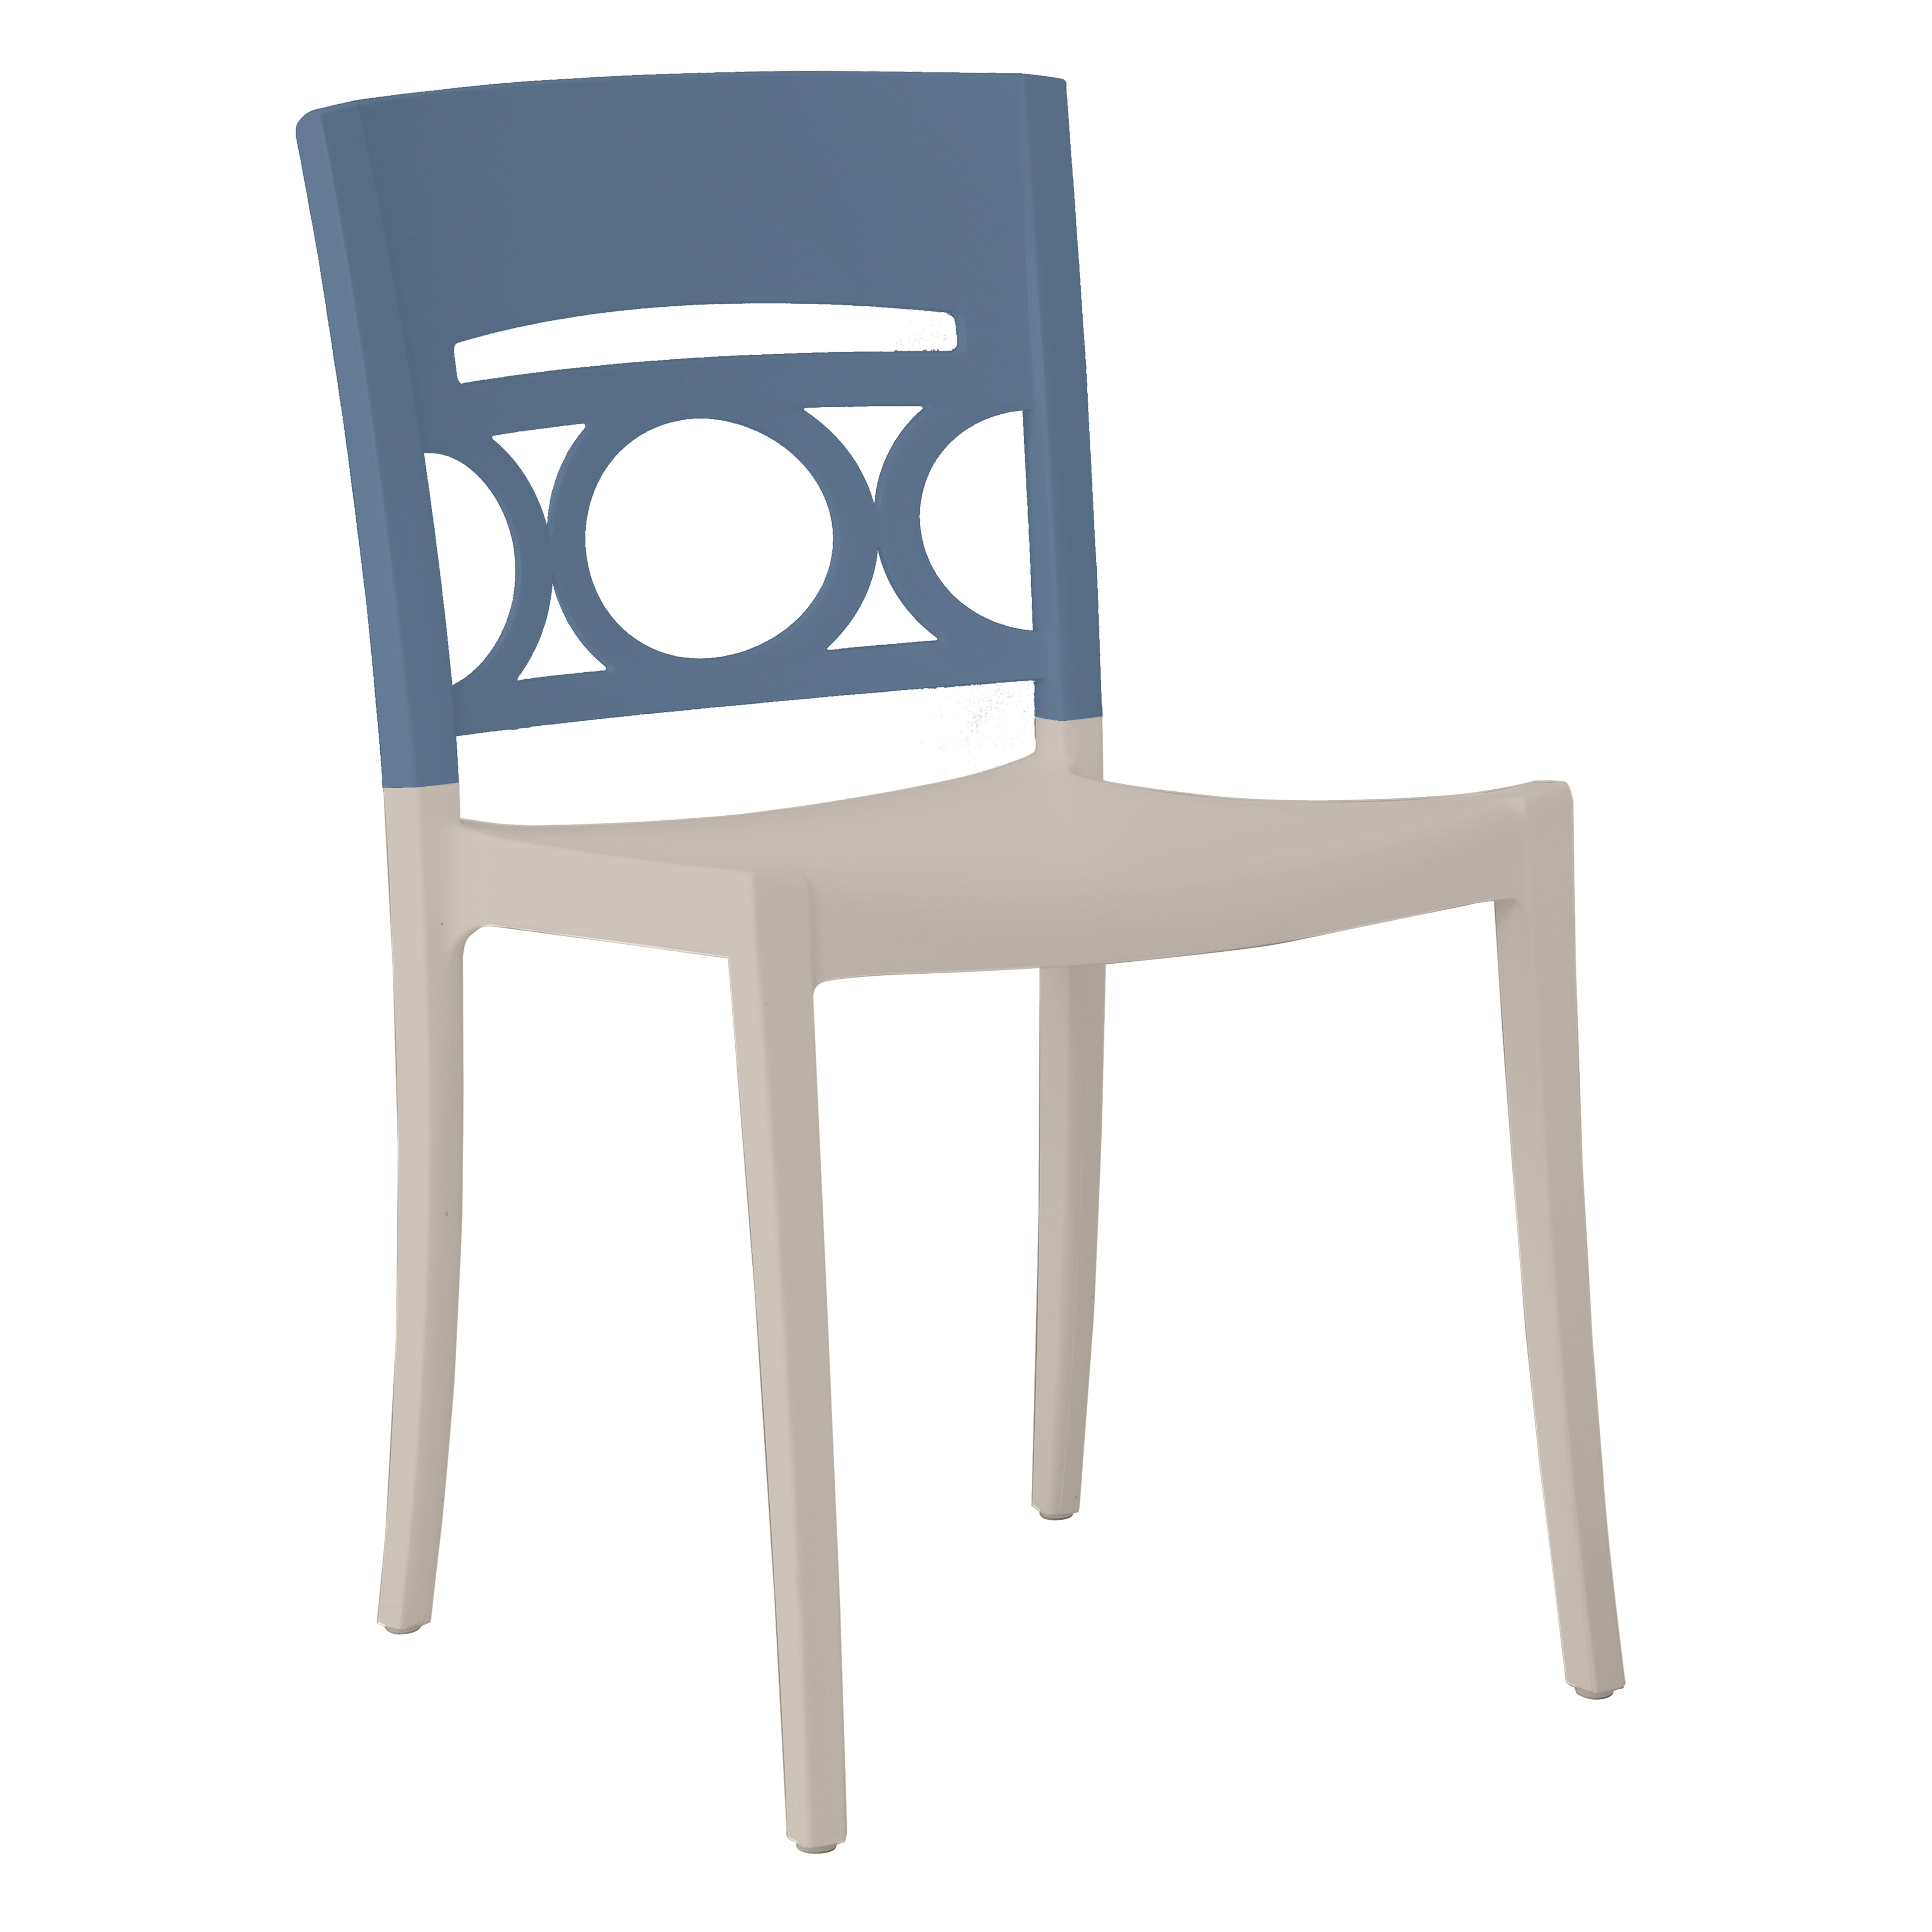 Grosfillex US566680 chair, side, stacking, outdoor